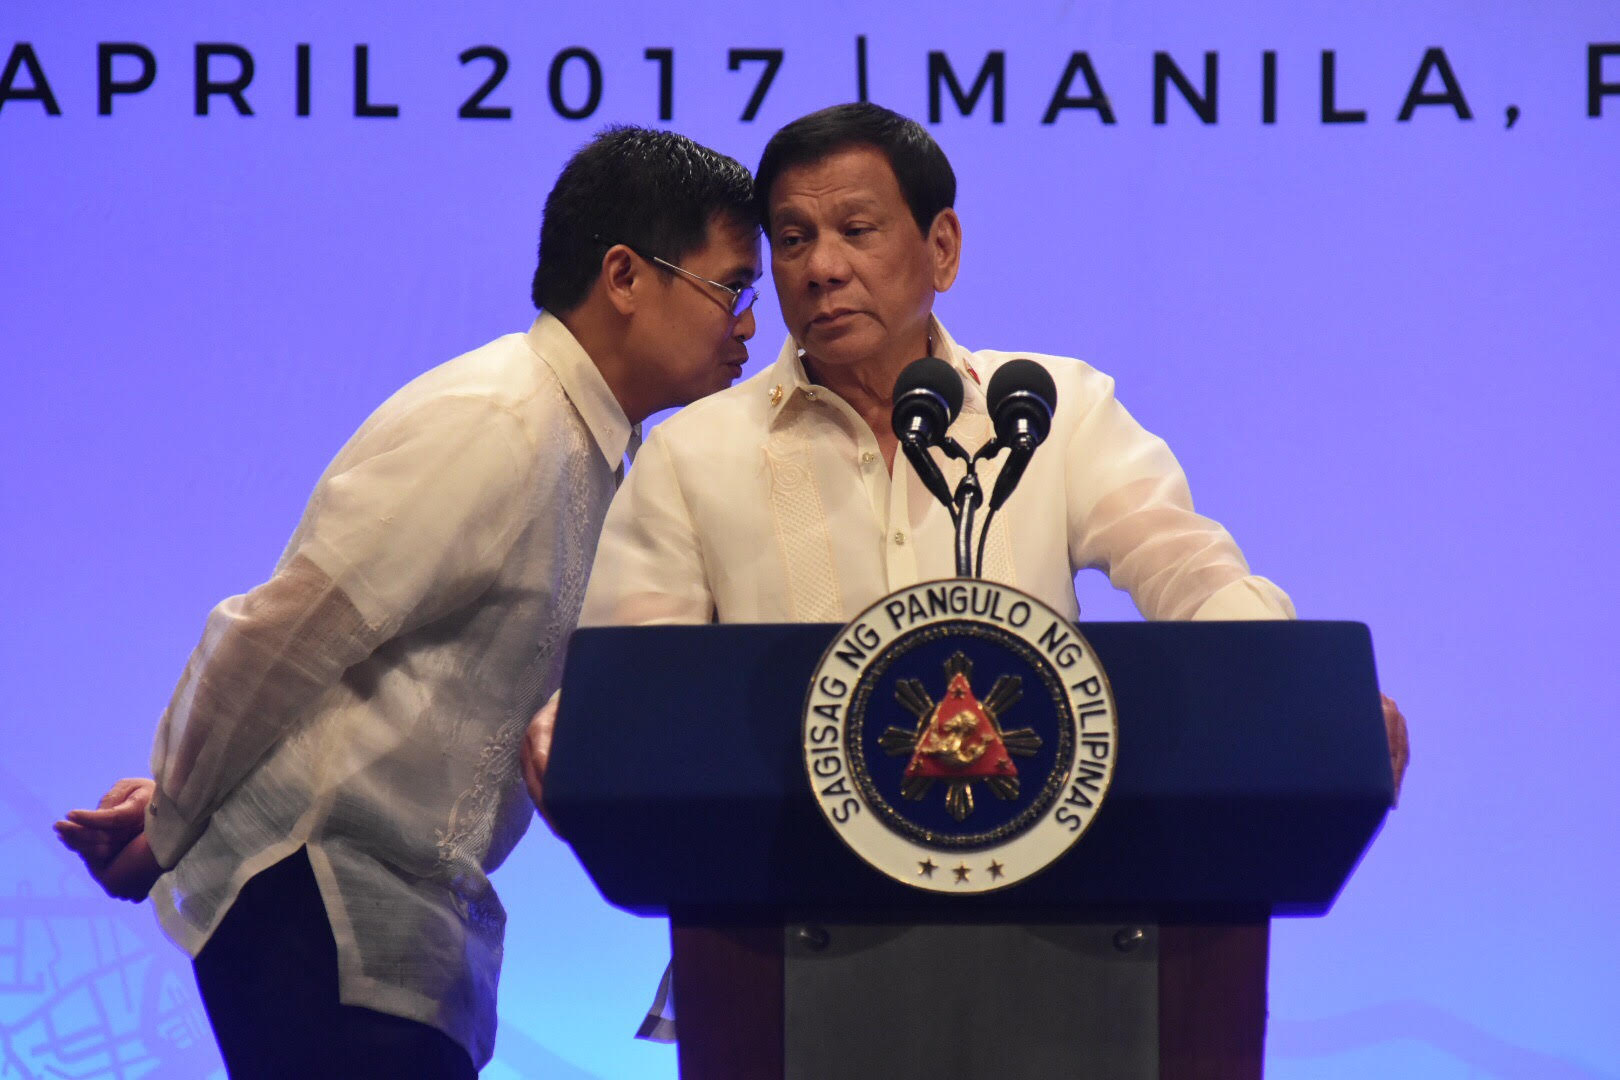 TALKATIVE PRESIDENT. President Duterte only agrees to end his press briefing after being told gala dinner guests can't eat until he arrives. Photo by Angie de Silva/Rappler